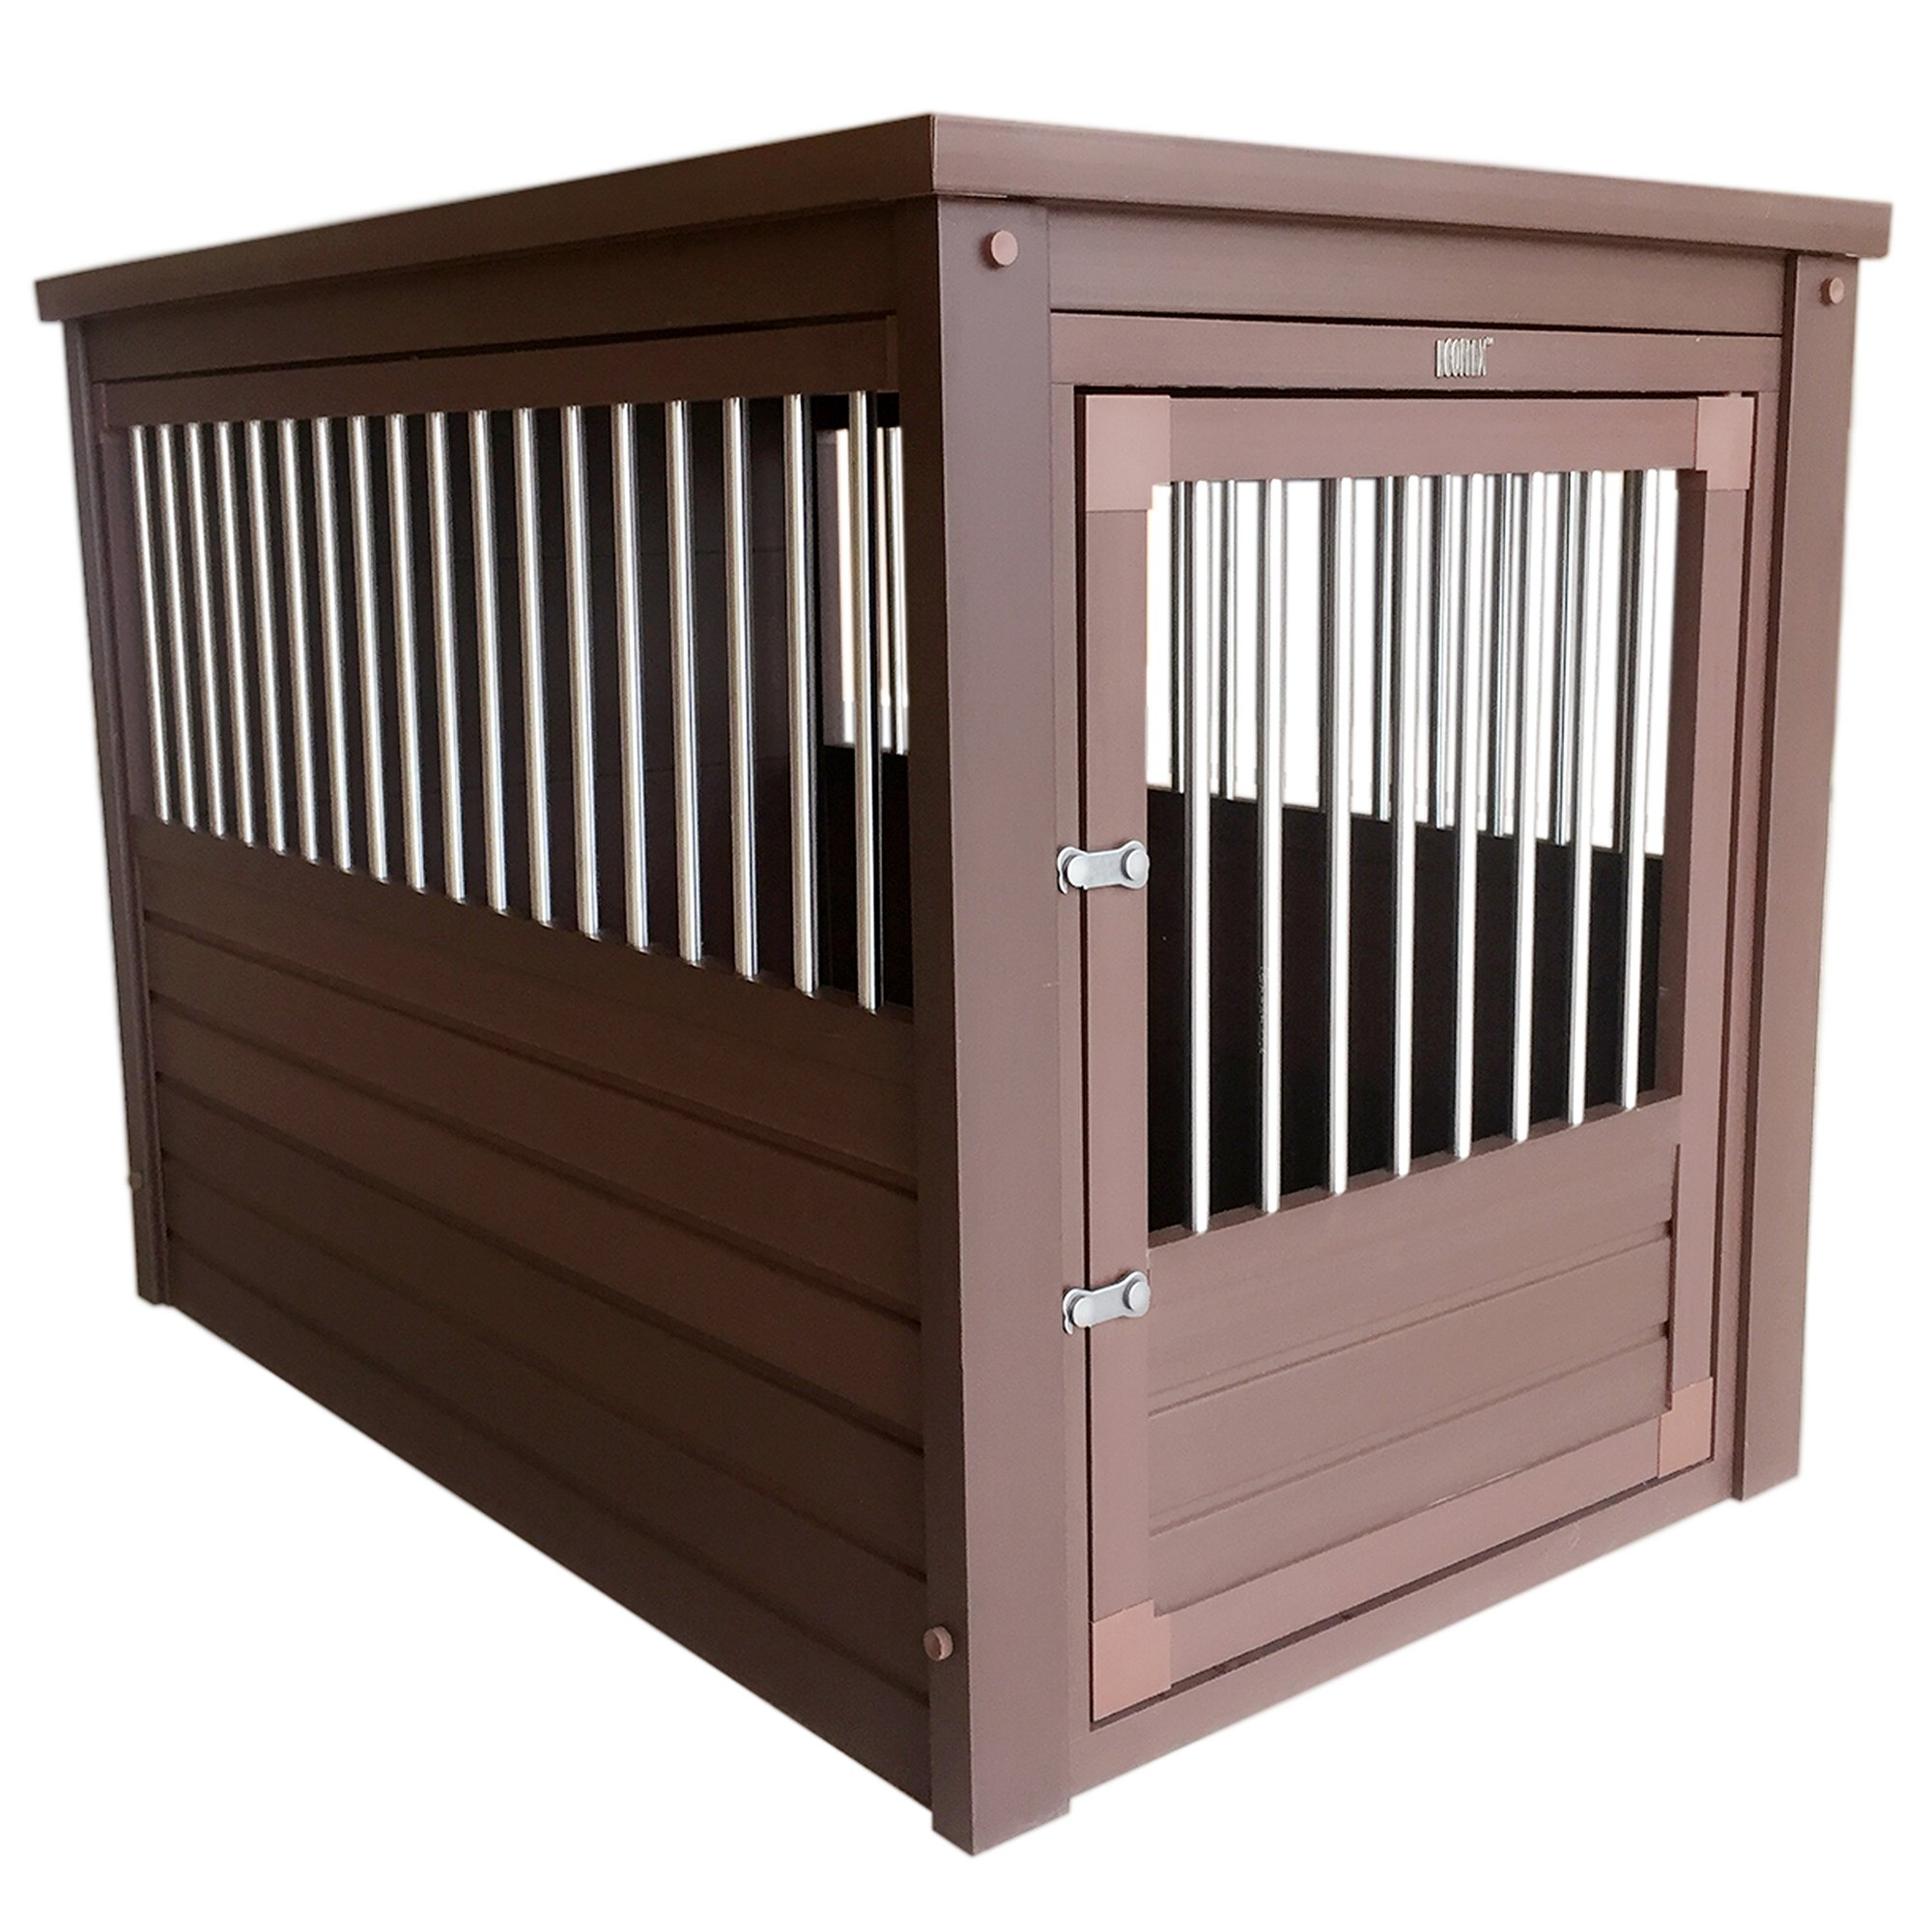 Dog Crates: Metal, Wire & Wood Containment + Free Shipping | Petco